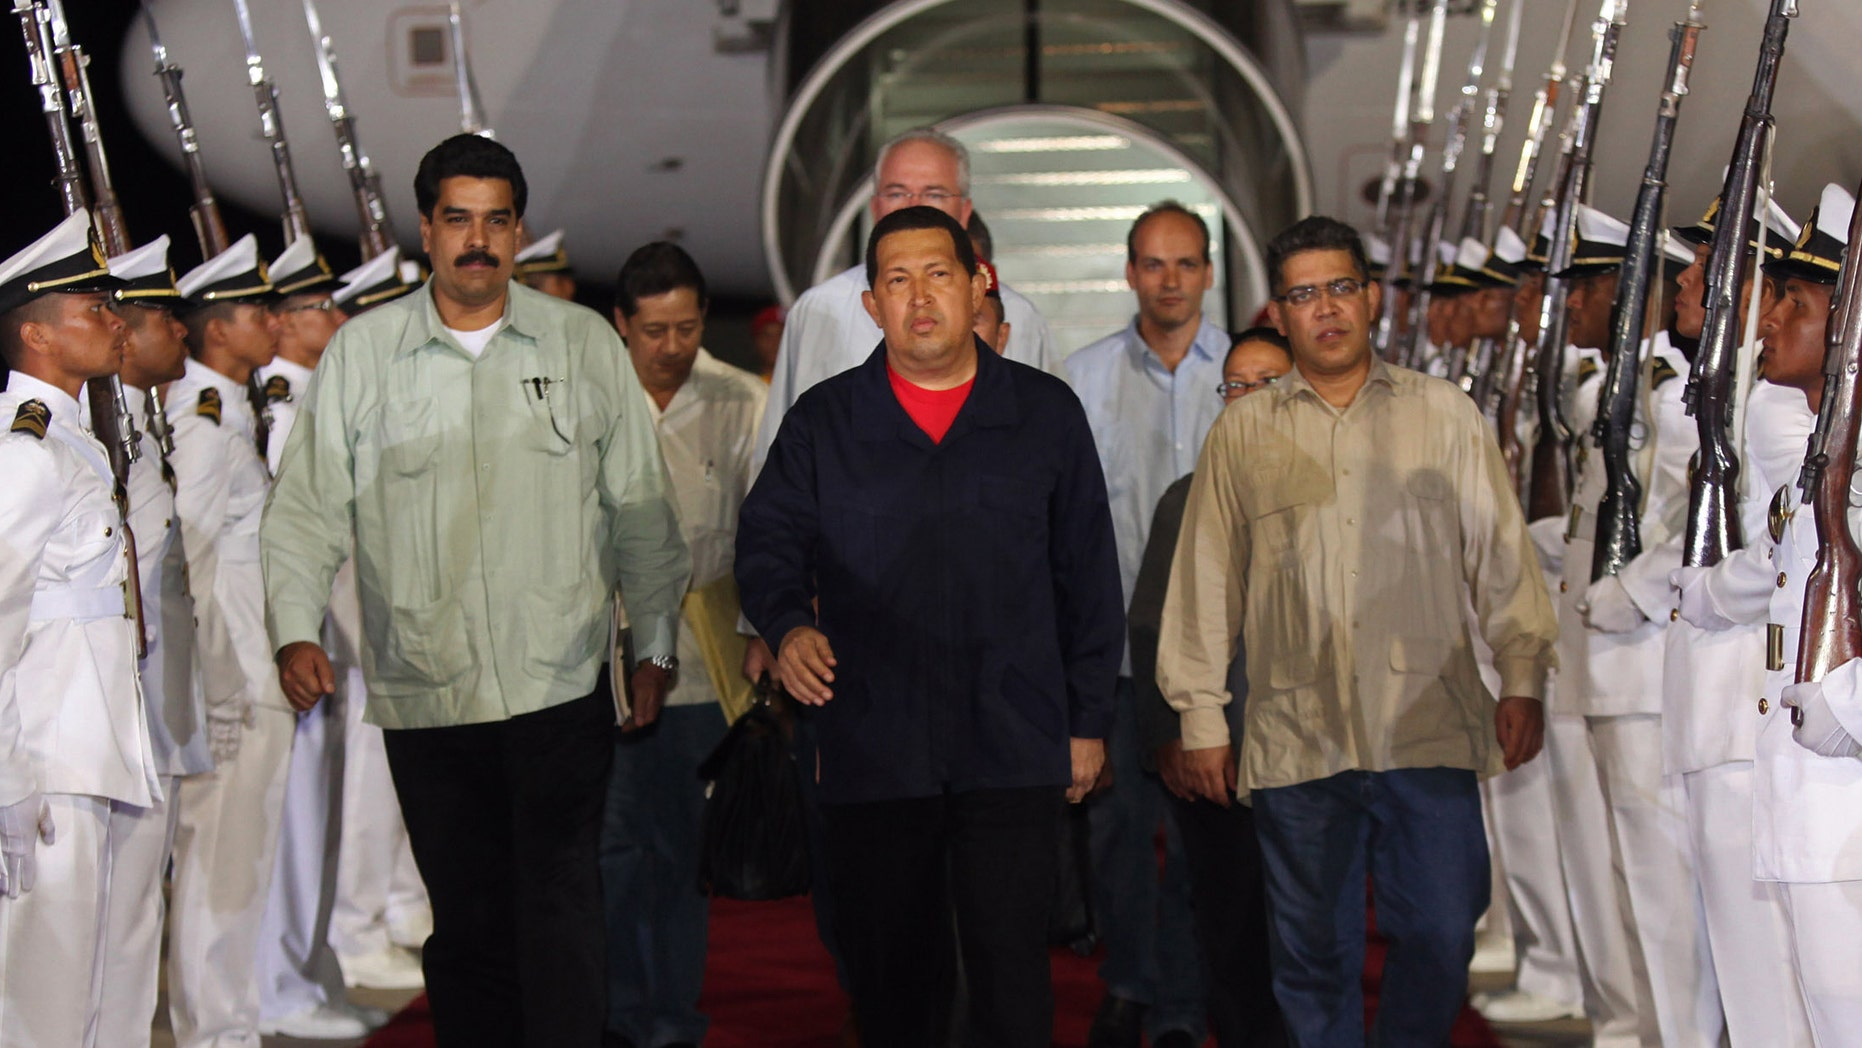 July 23, 2011:  In this file photo, released by Miraflores Presidential Press Office, Venezuela's President Hugo Chavez, center, accompanied by Foreign Minister Nicolas Maduro, front left, and Vice President Elias Jaua, front right, arrive to the airport in Maiquetia, Venezuela.